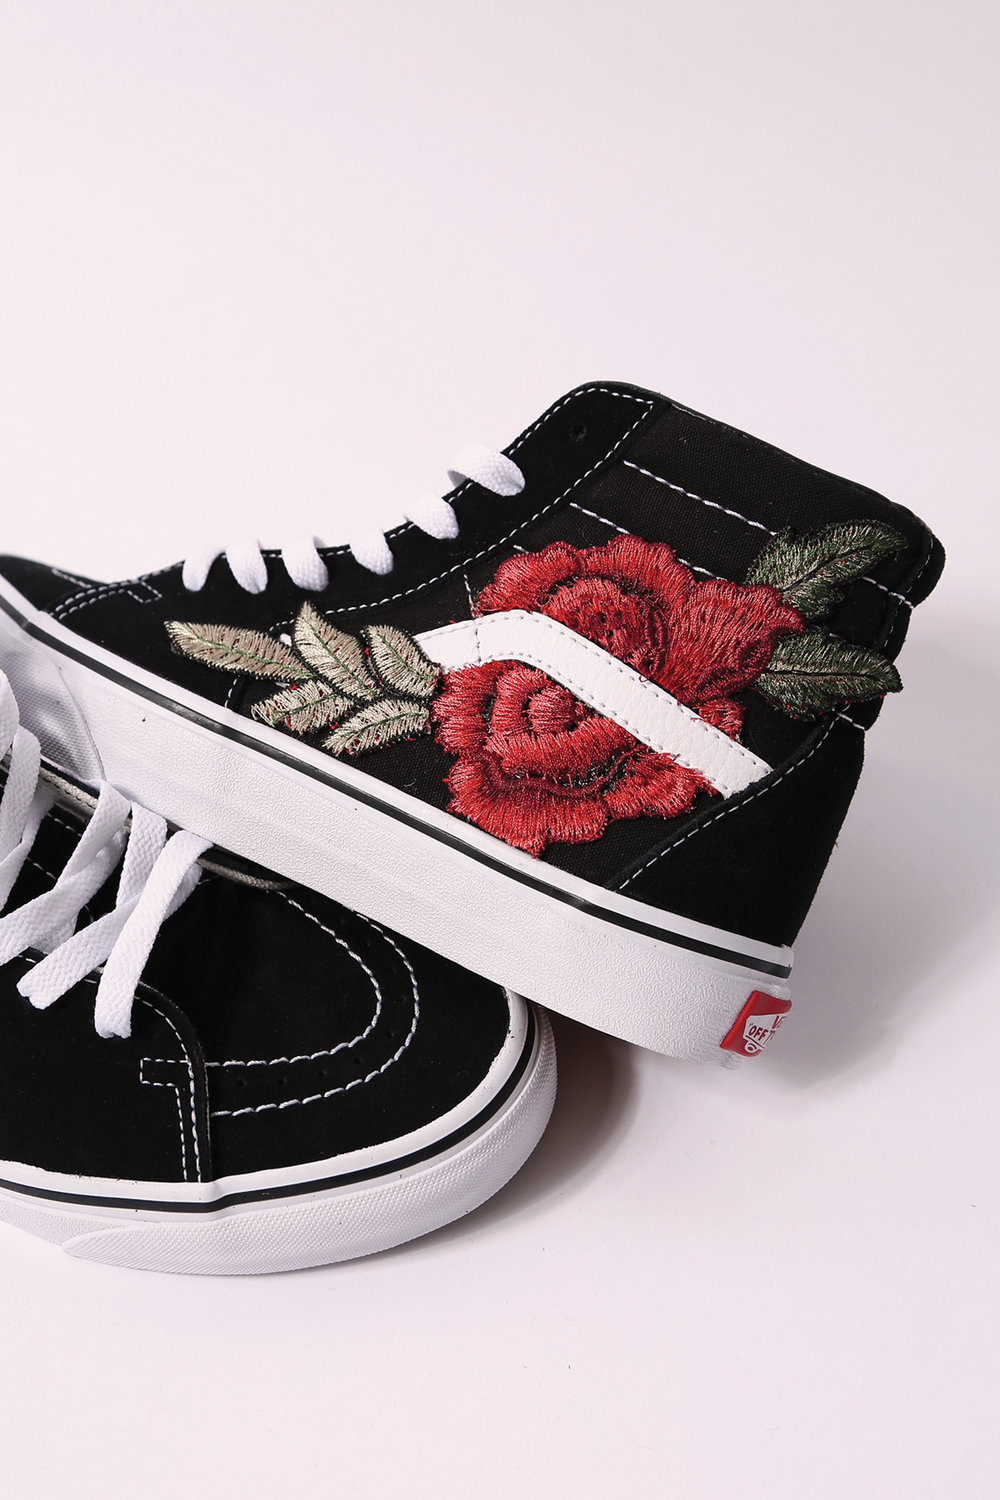 vans shoes with roses. custom vans rose sk8-hi shoes with roses